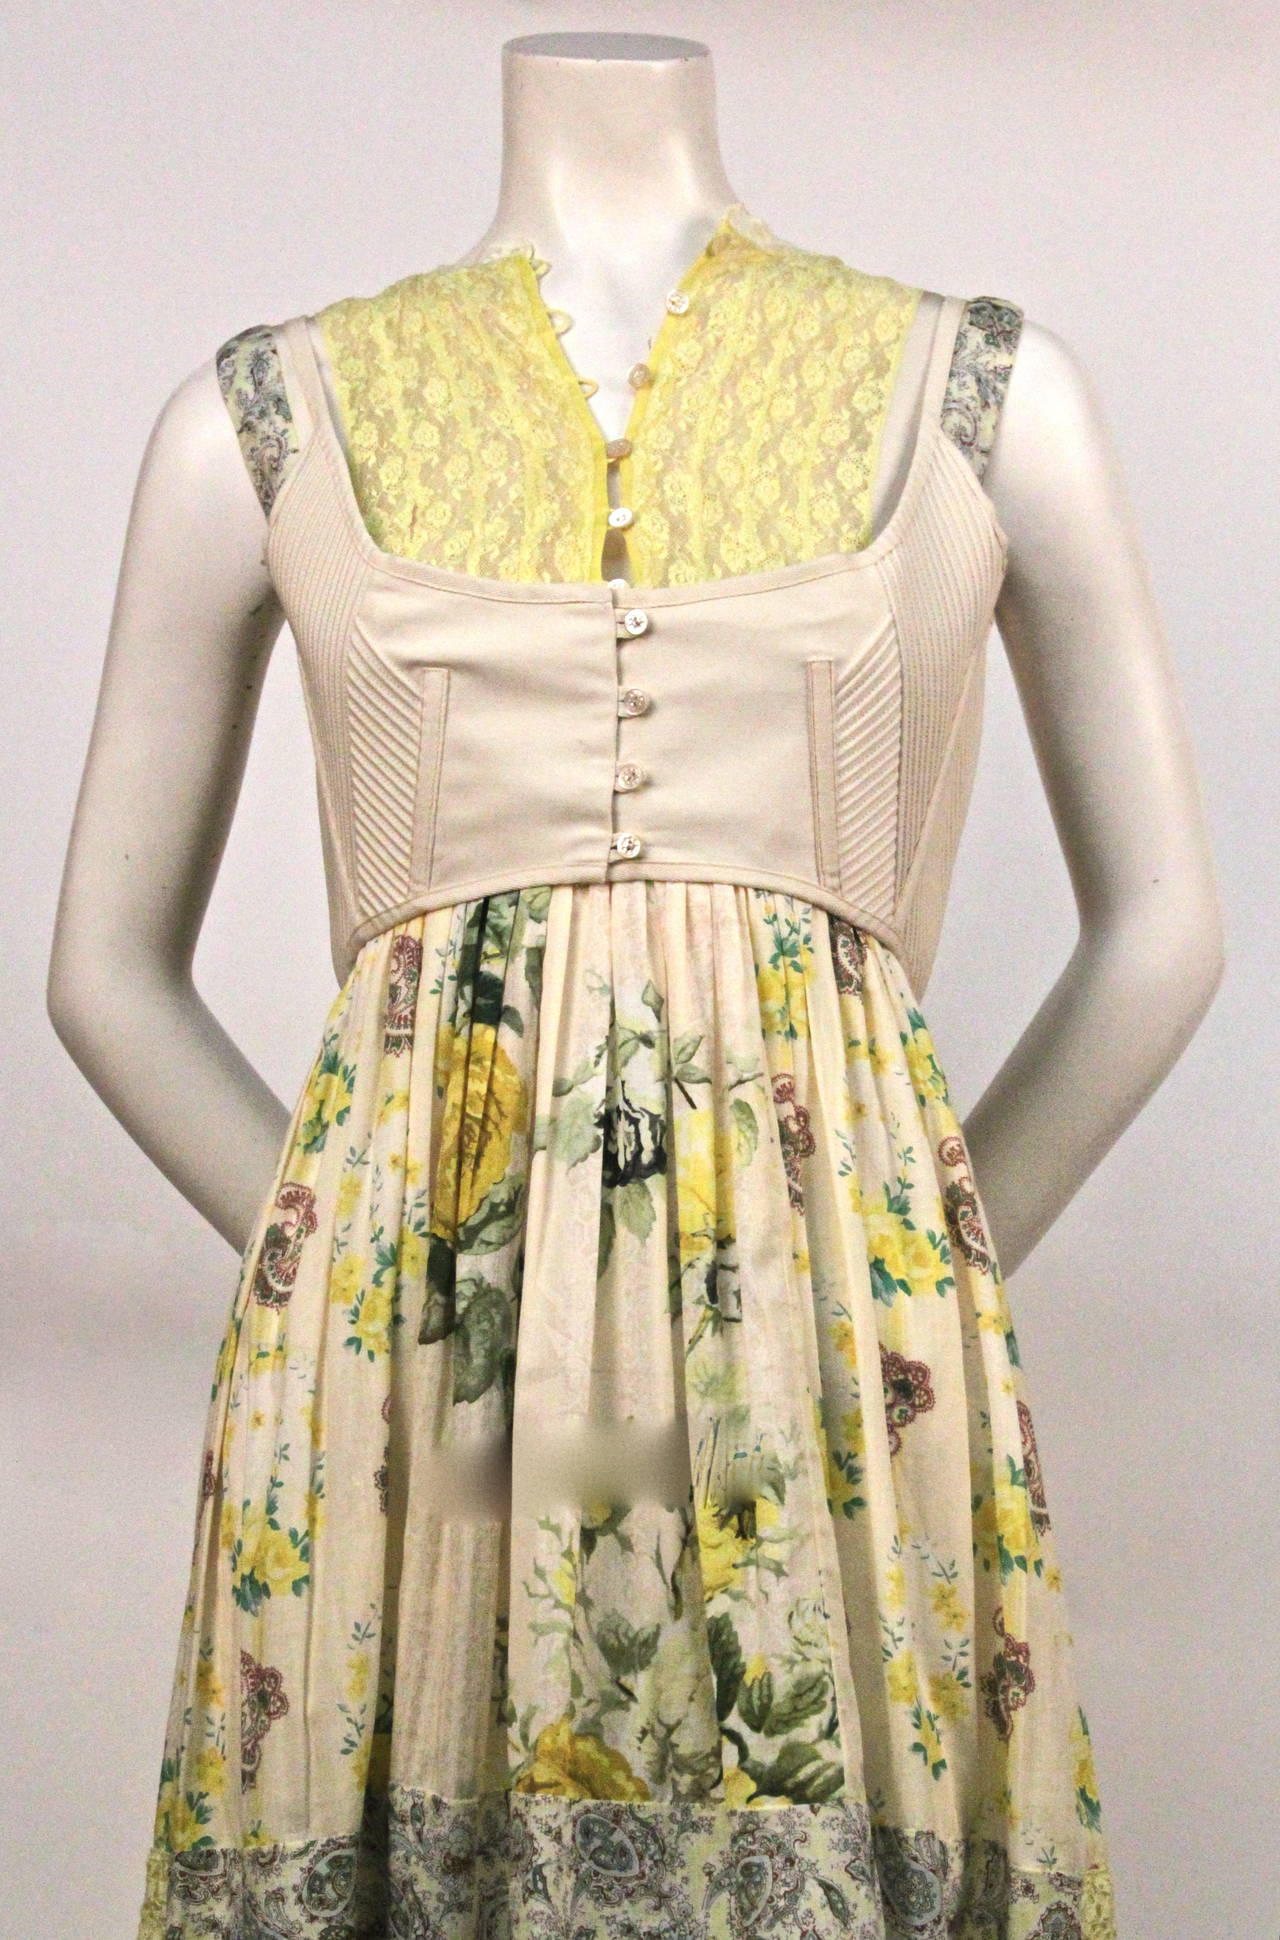 Very rare floral patchwork dress with bustier vest from Alexander McQueen from the 'It is only a game' collection dating to spring of 2005. Exactly as seen on the runway. Italian size 44. Made in Italy. Excellent condition.